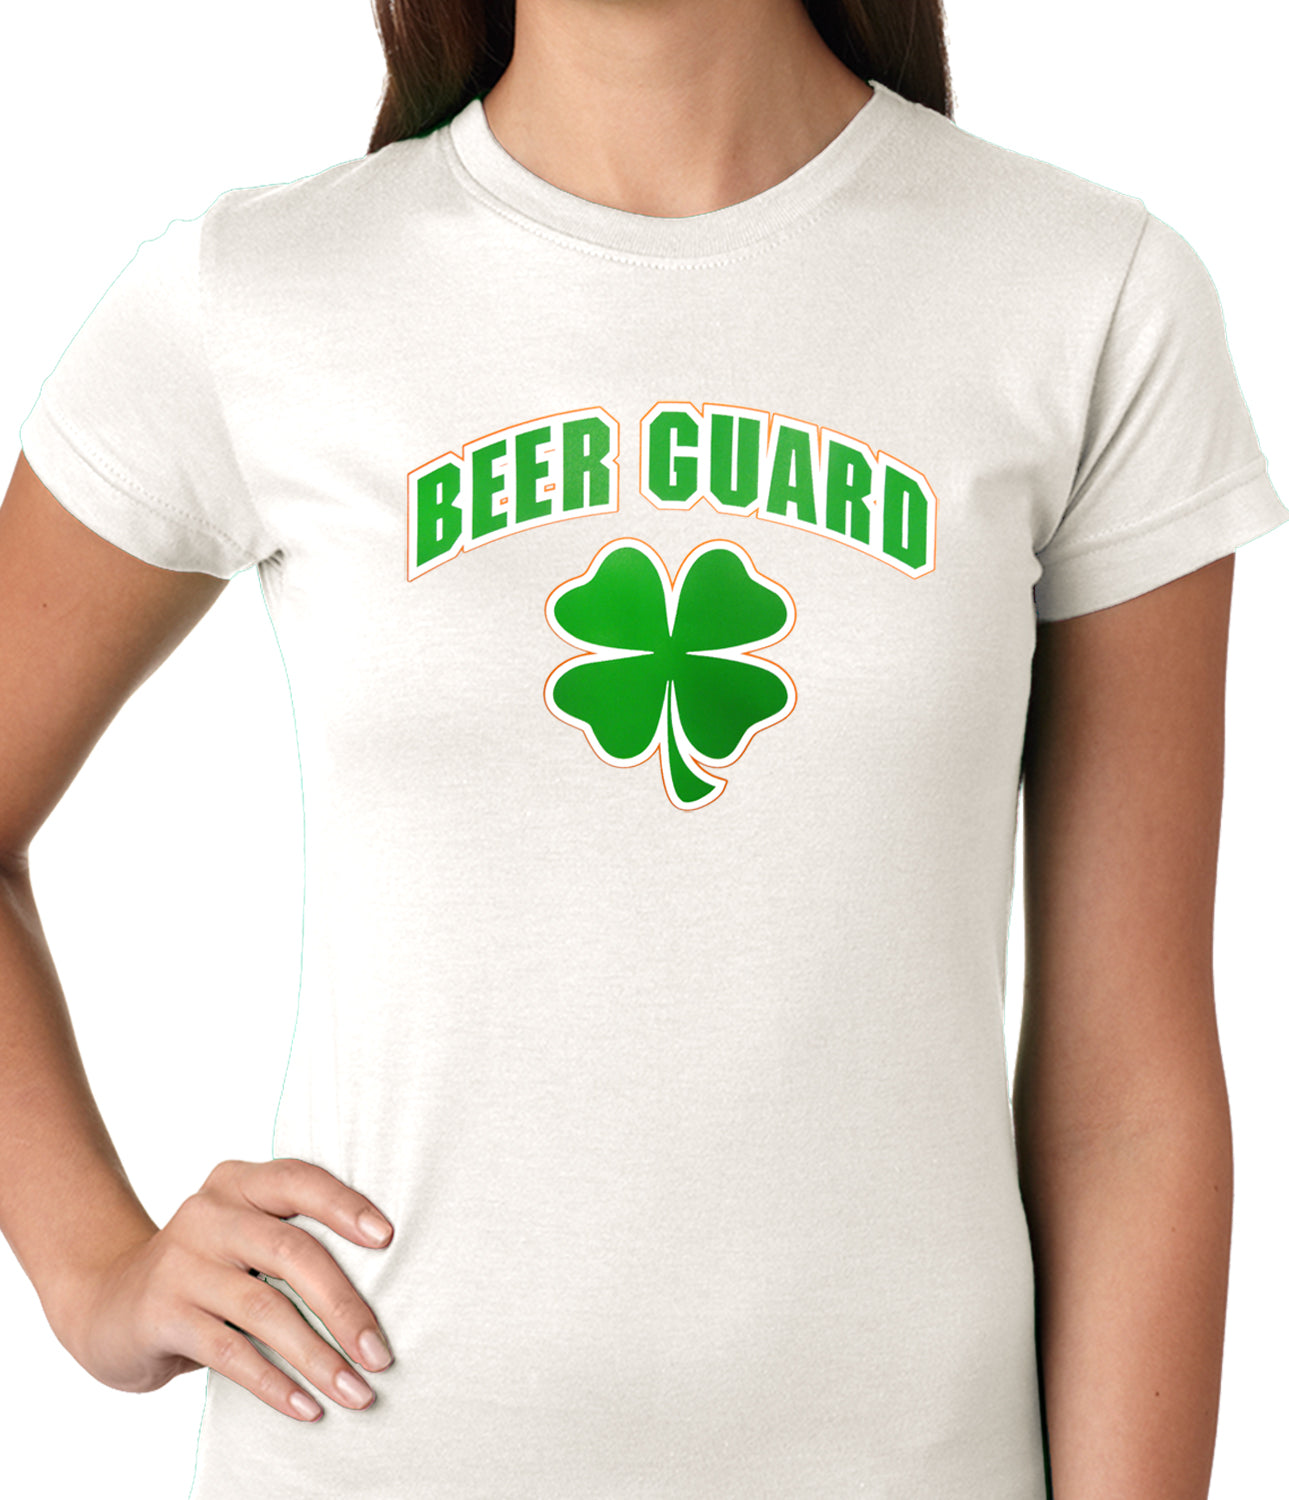 Beer Guard Irish Shamrock St. Patrick's Day Girls T-shirt White